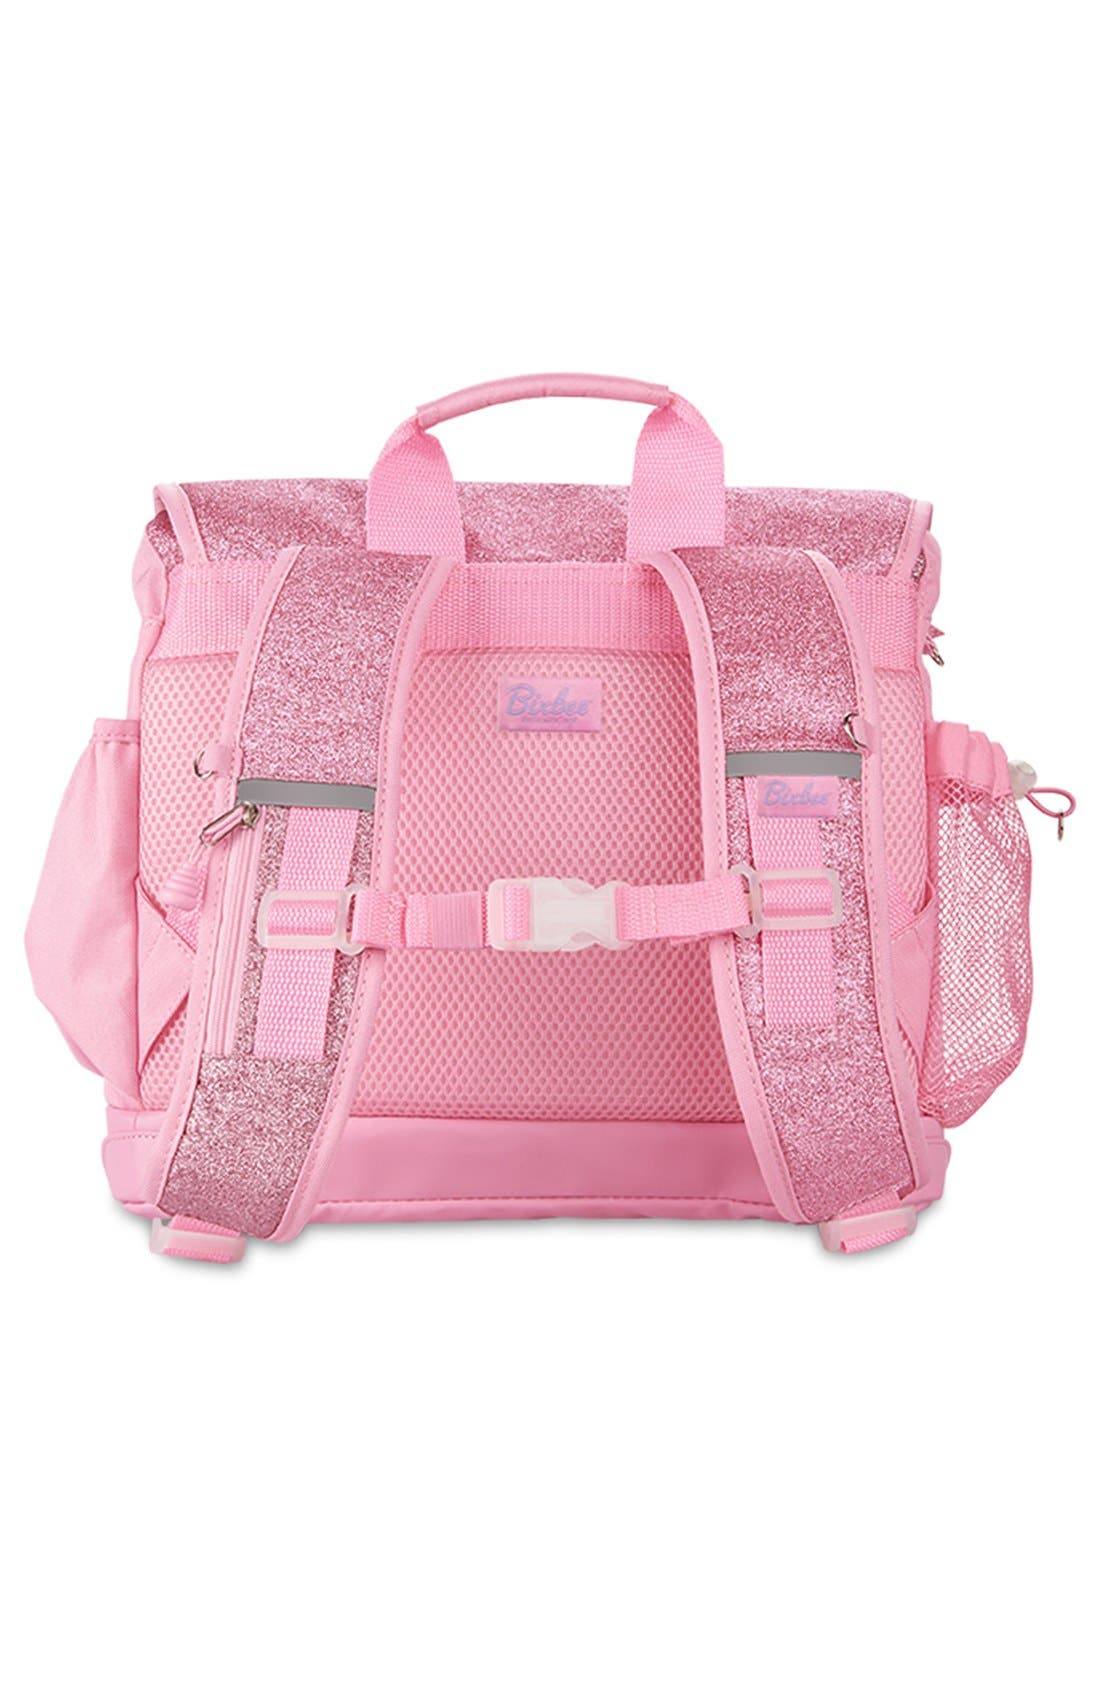 'Large Sparkalicious' Backpack,                             Alternate thumbnail 2, color,                             Pink